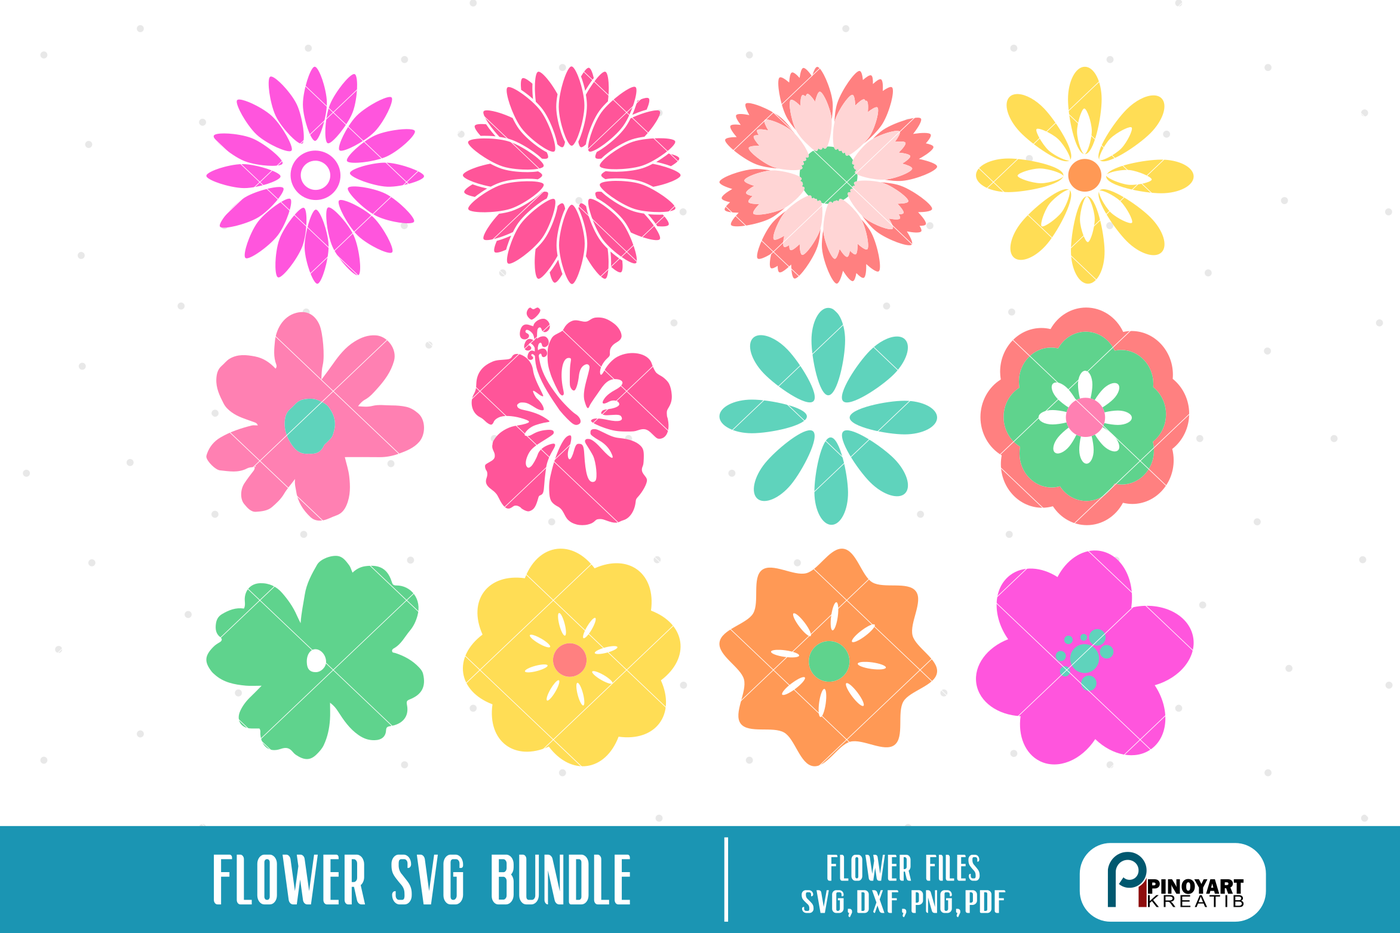 Flower Svg Flower Svg For Cricut Flower Svg Flower Svg File Flower